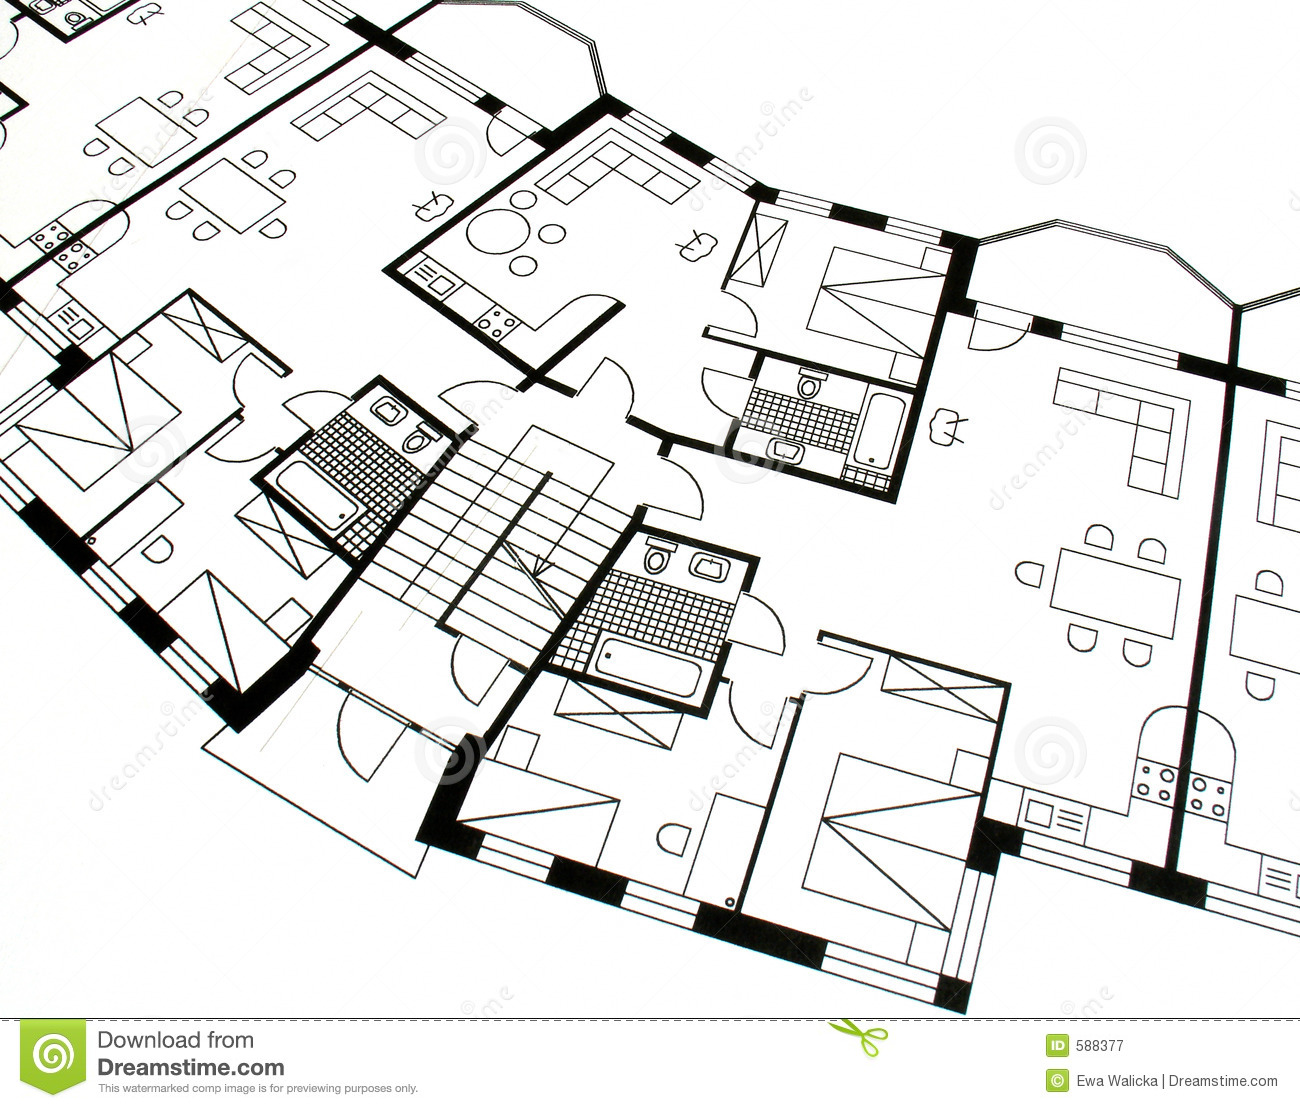 Architectural plan royalty free stock photography image for Architectural plans